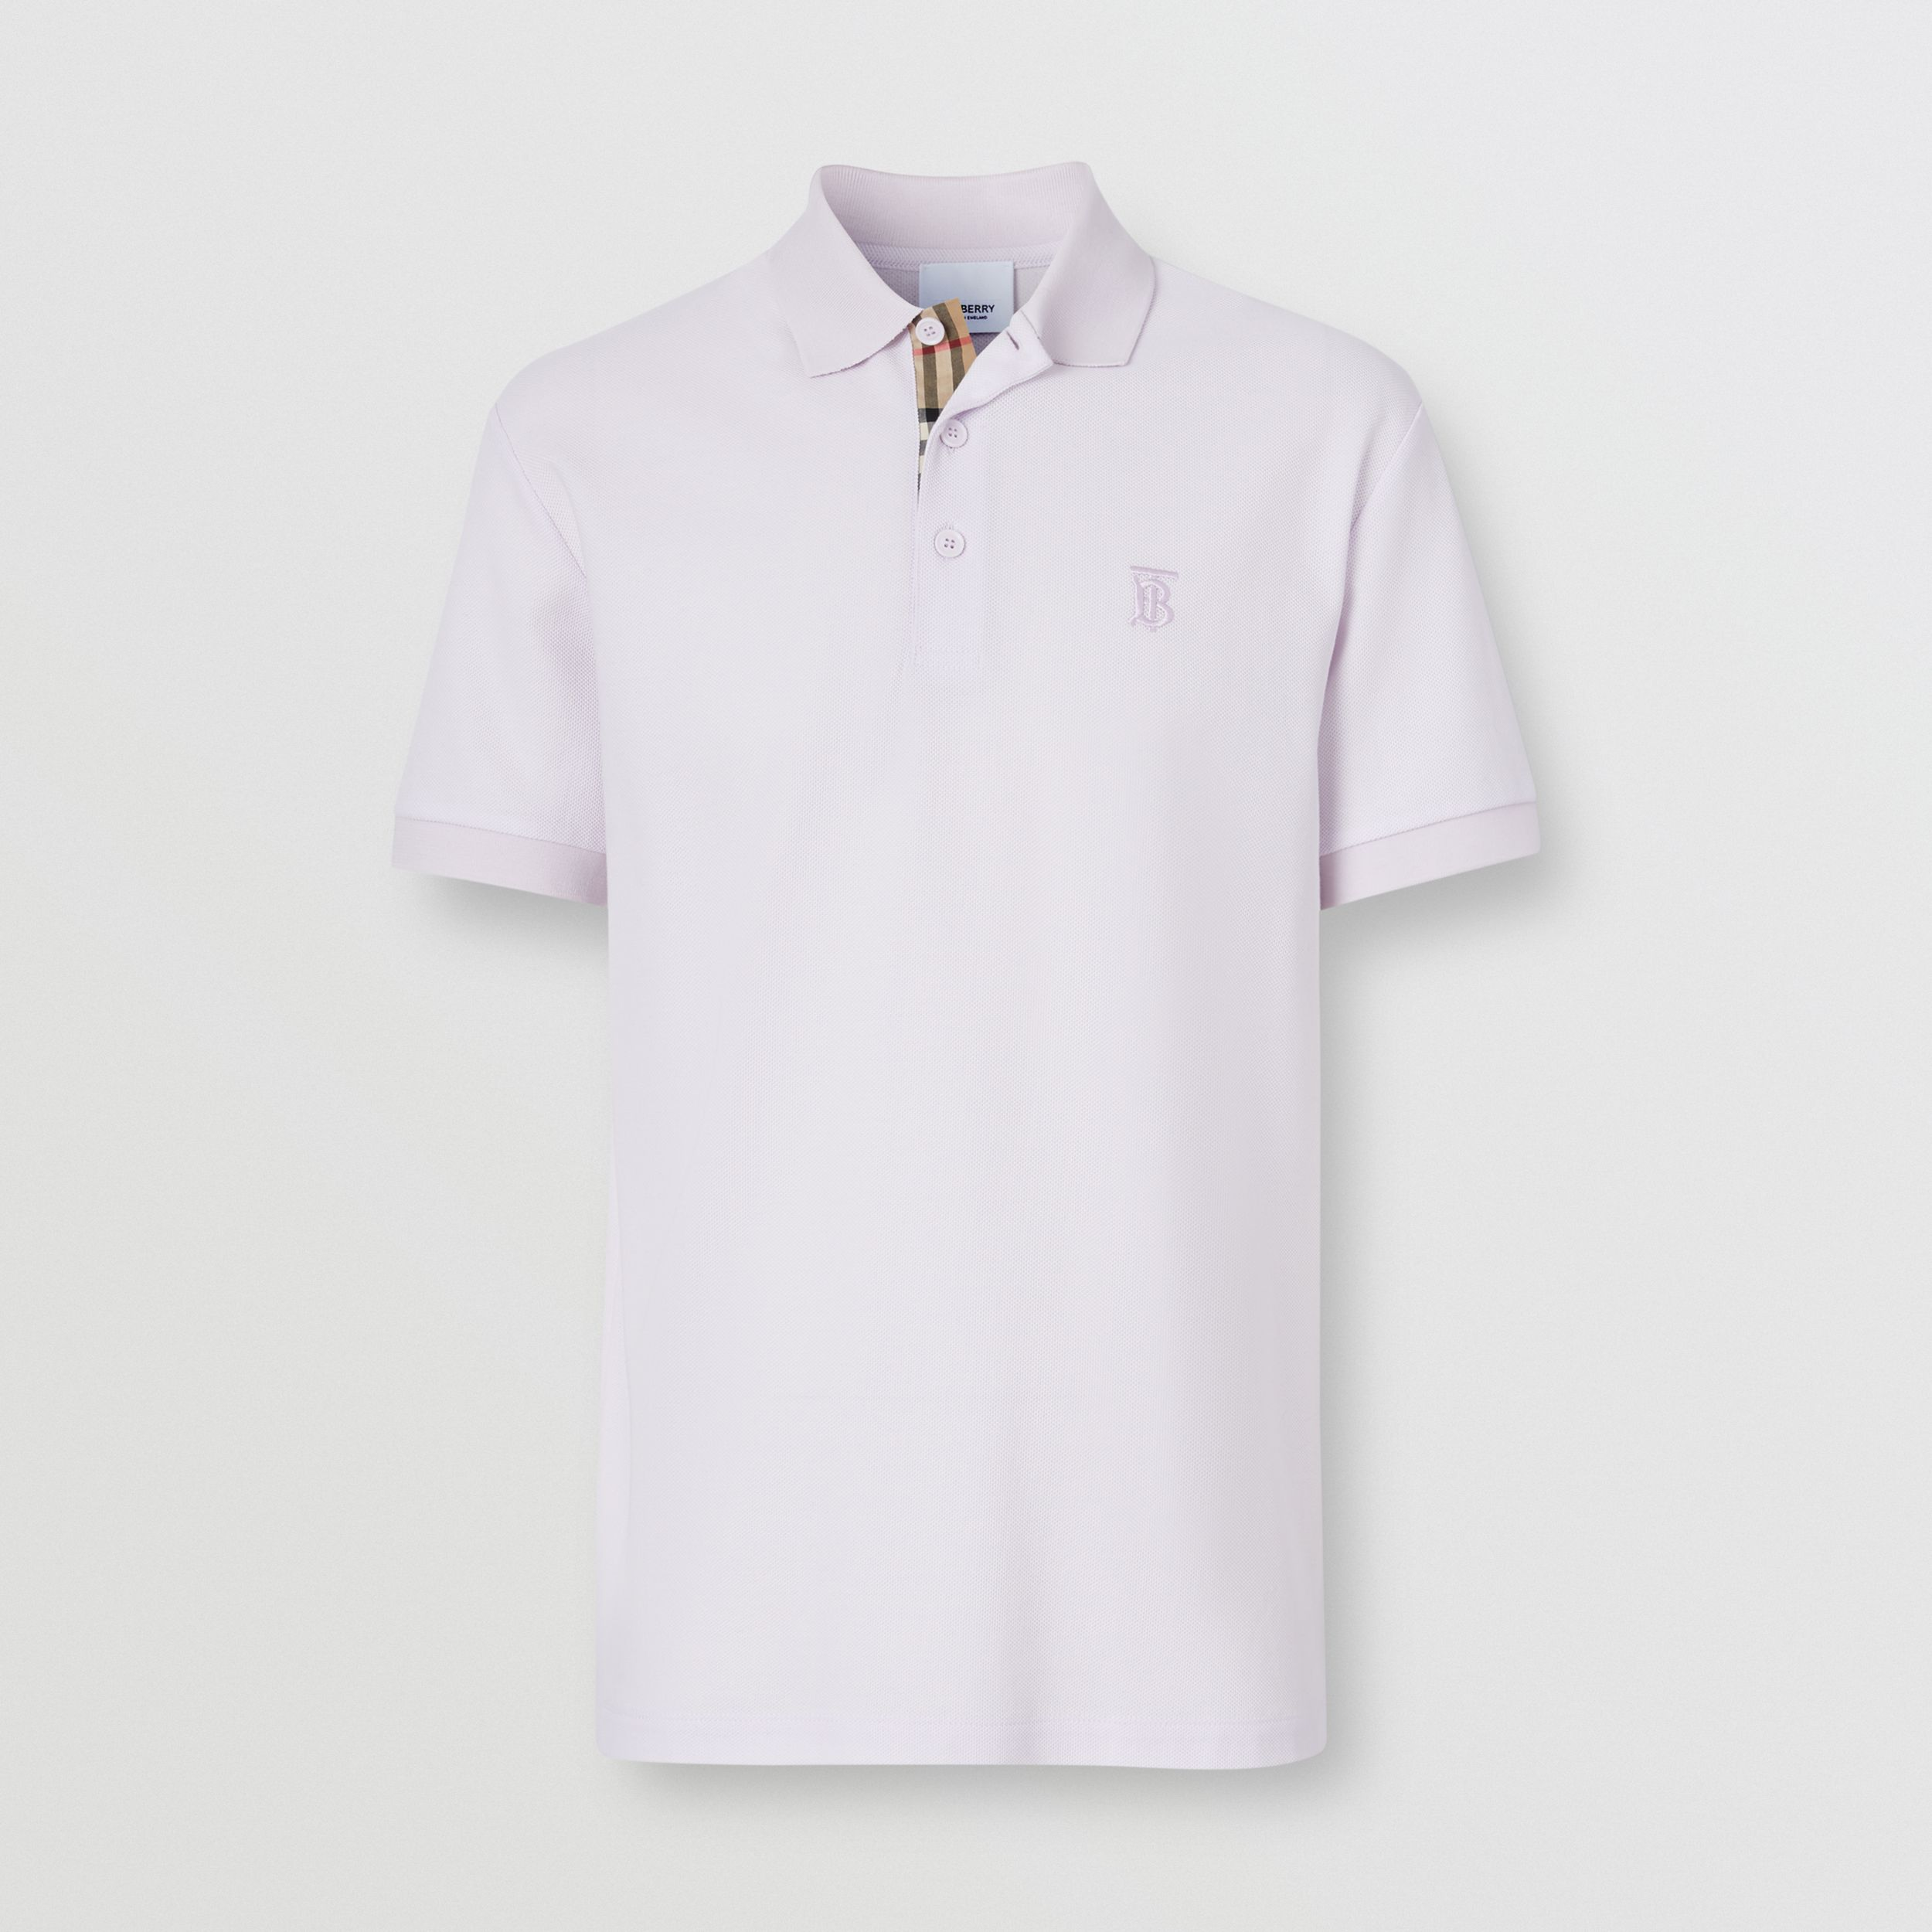 Monogram Motif Cotton Piqué Polo Shirt in Pale Thistle - Men | Burberry Canada - 4